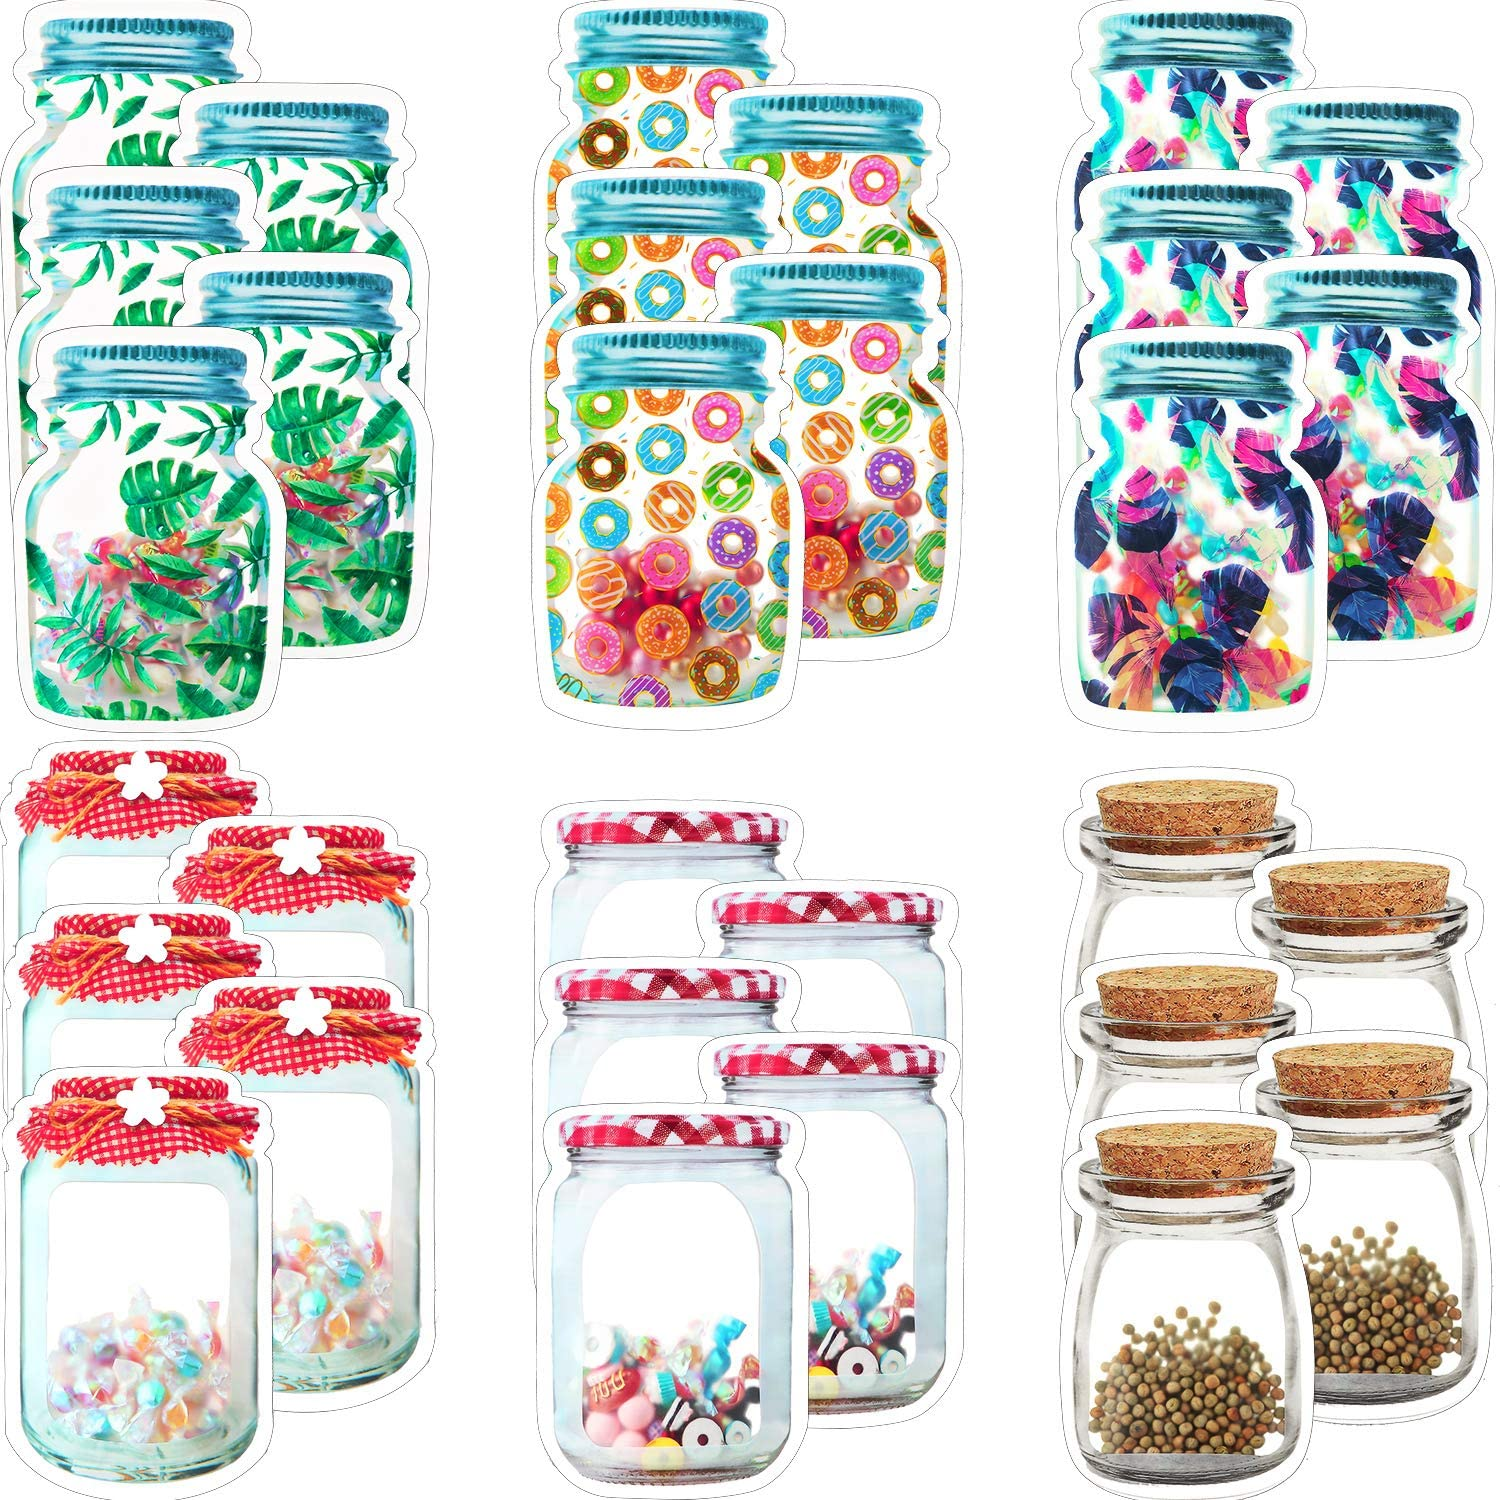 30 Pieces Mason Jar Bottle Bags Storage Bags Snack Sandwich Zipper Bags Reusable Airtight Seal Storage Bags Nuts Candy Bag Leak-Proof Food Bags for Travel Camping Picnic Food Organizer